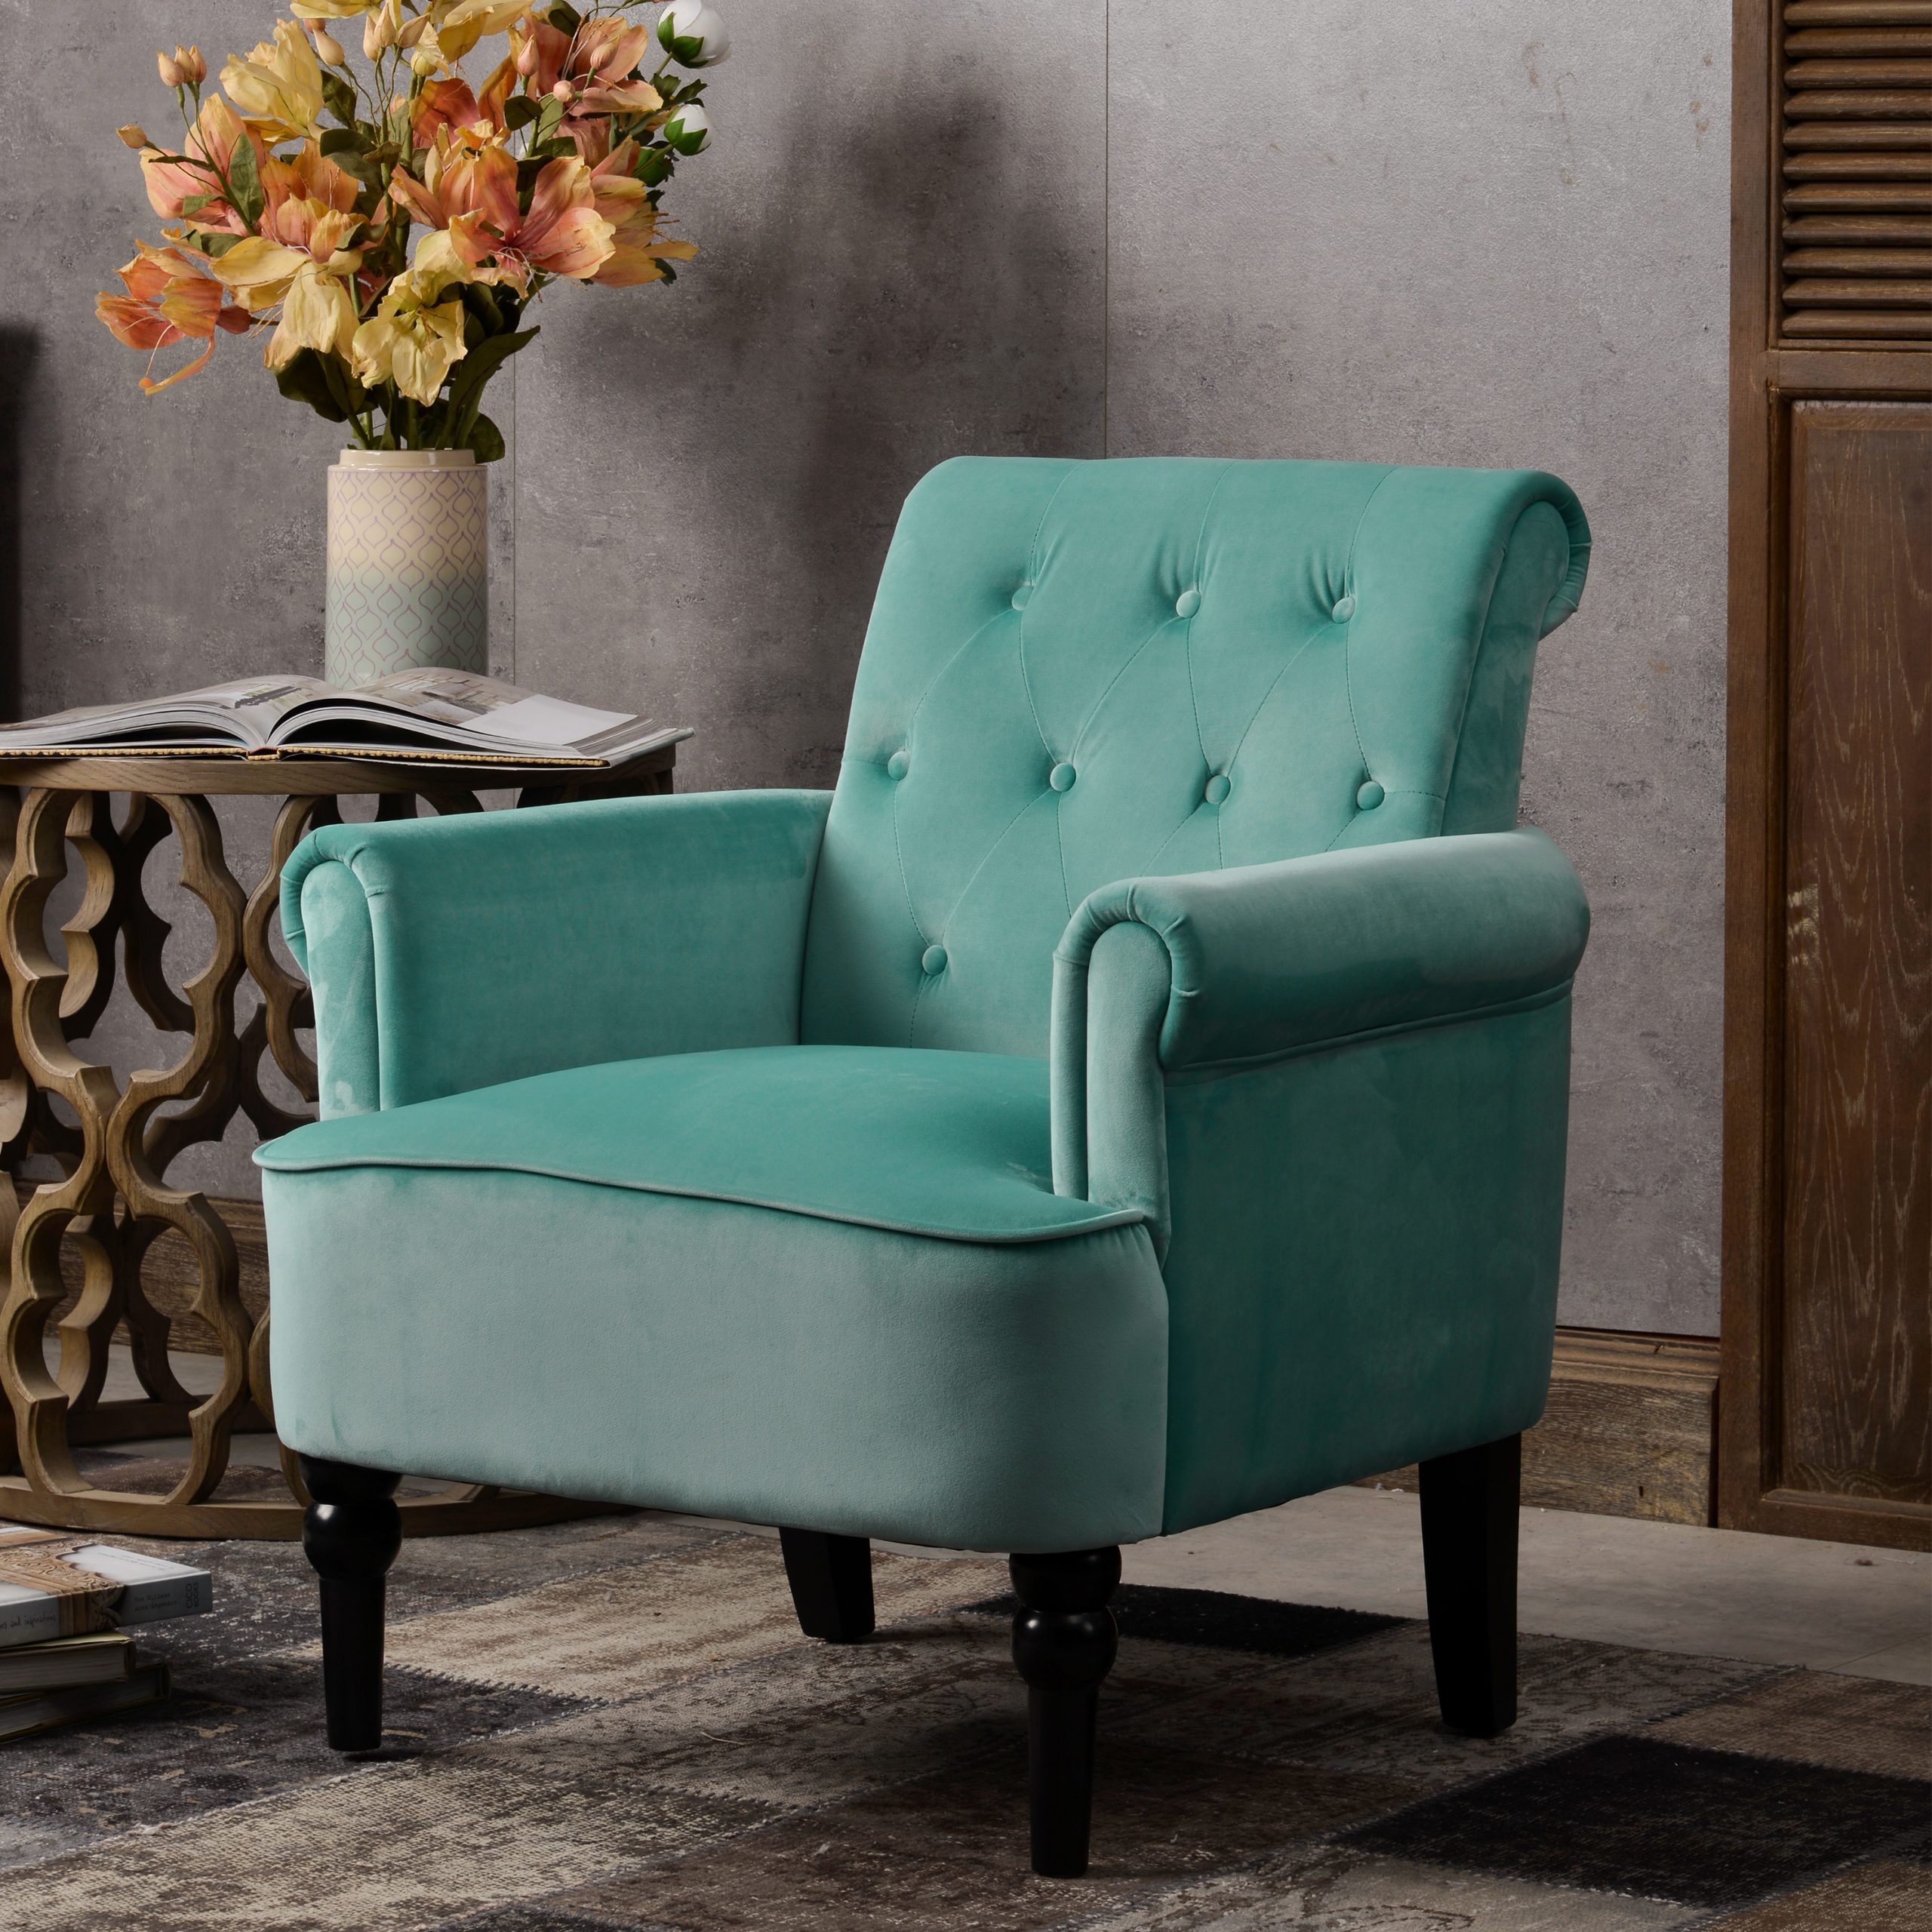 Elegant Armchairs with Wooden Legs